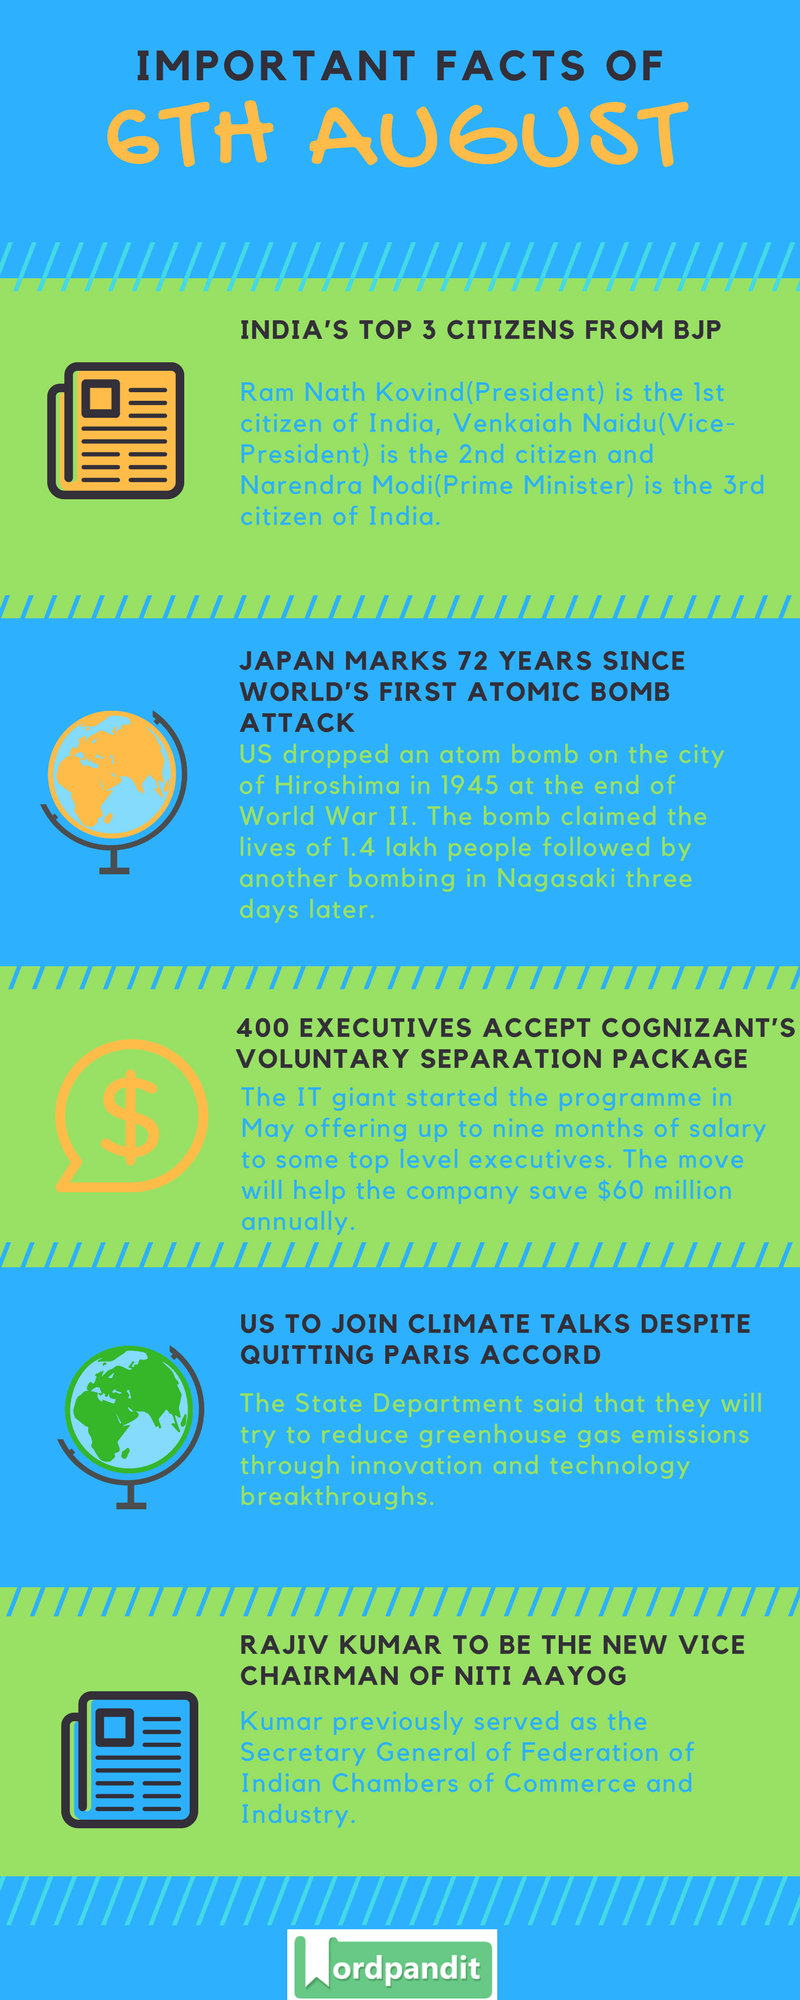 Daily-Current-Affairs-6-august-2017-Current-Affairs-Quiz-august-4-2017-Current-Affairs-Infographic